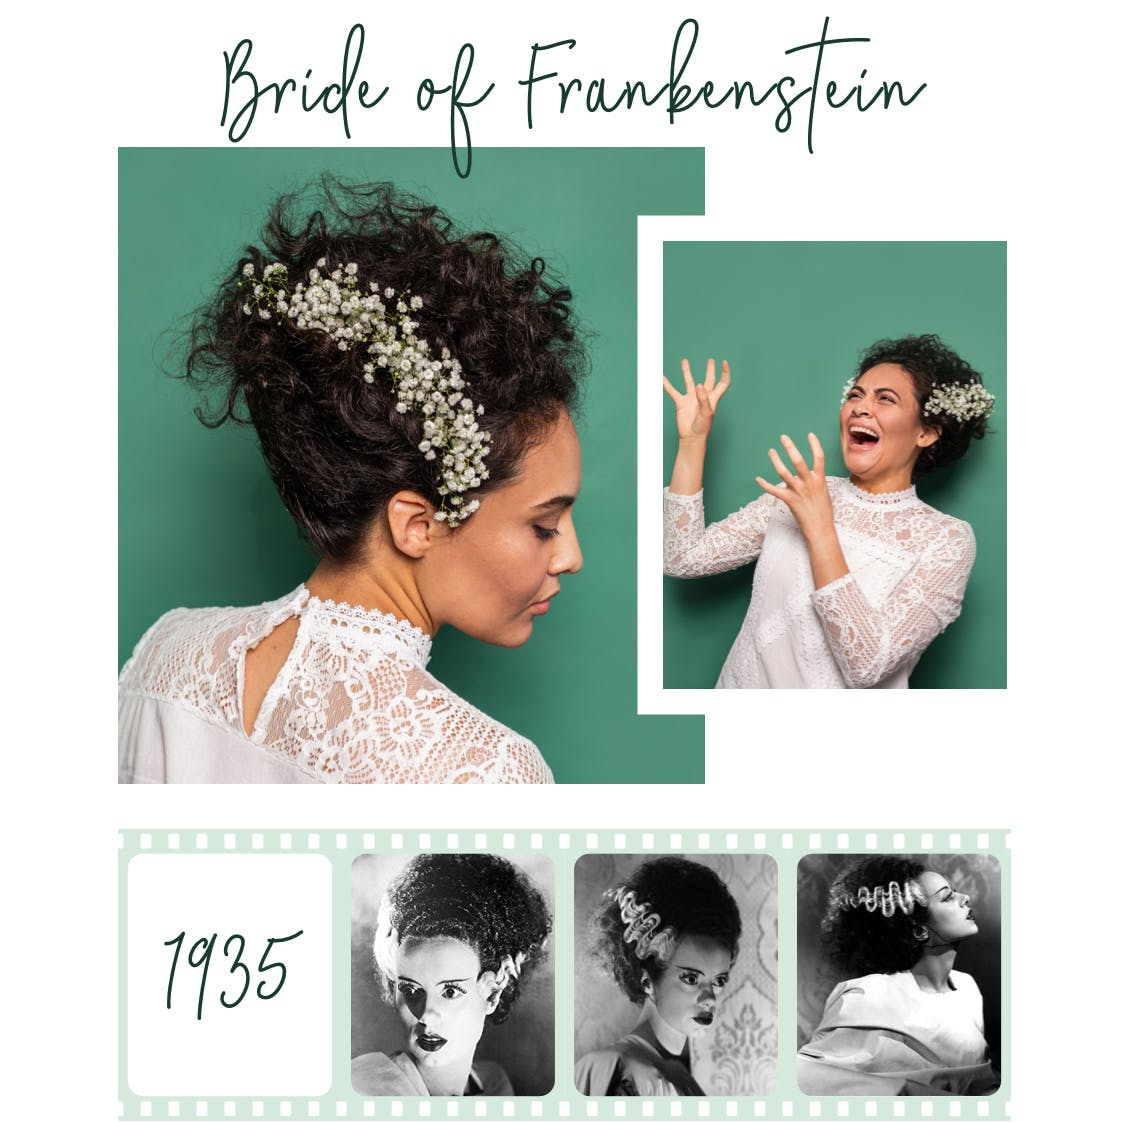 Image of eSalon employee as bride of Frankenstein costume with long curly black hair color as the focus with image below of original look from 1935